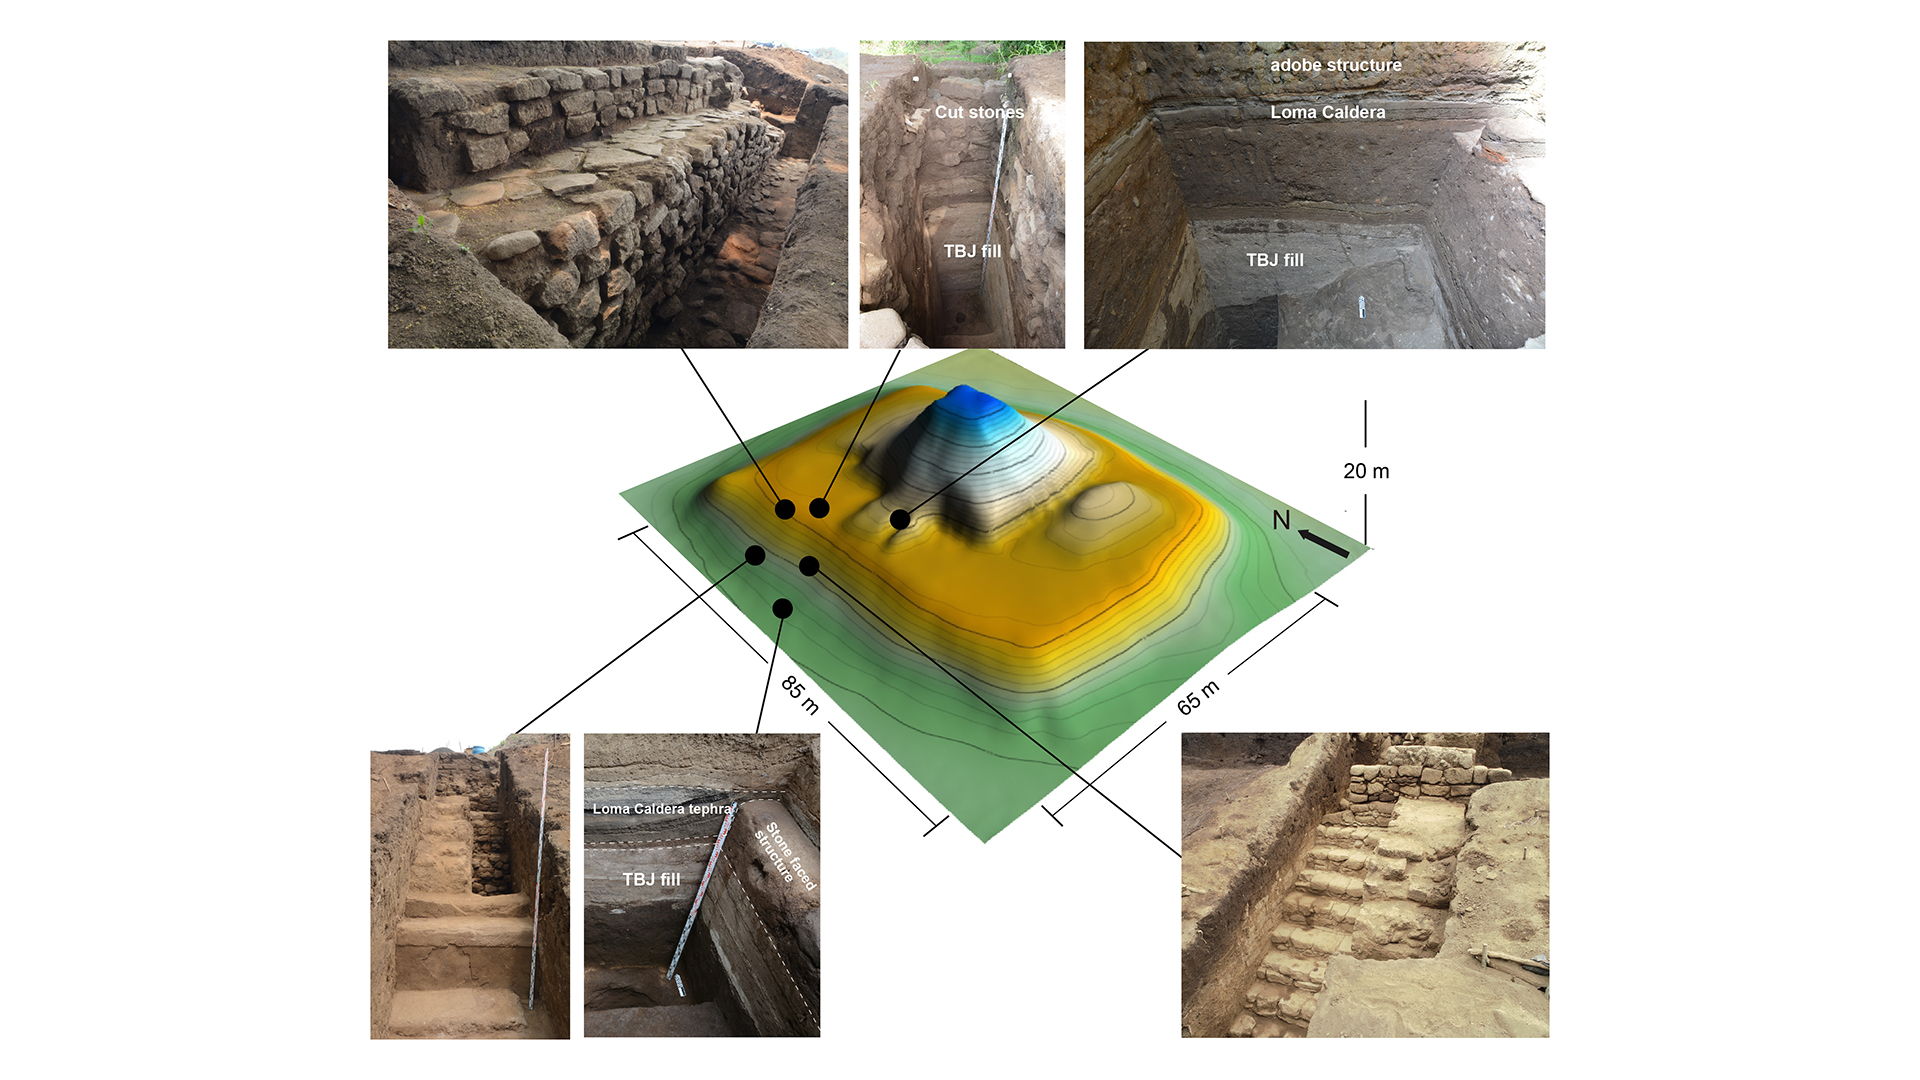 3D plan of the Mayan pyramid with important excavation points. Credit: Akira Ichikawa / Antiquity, 2021